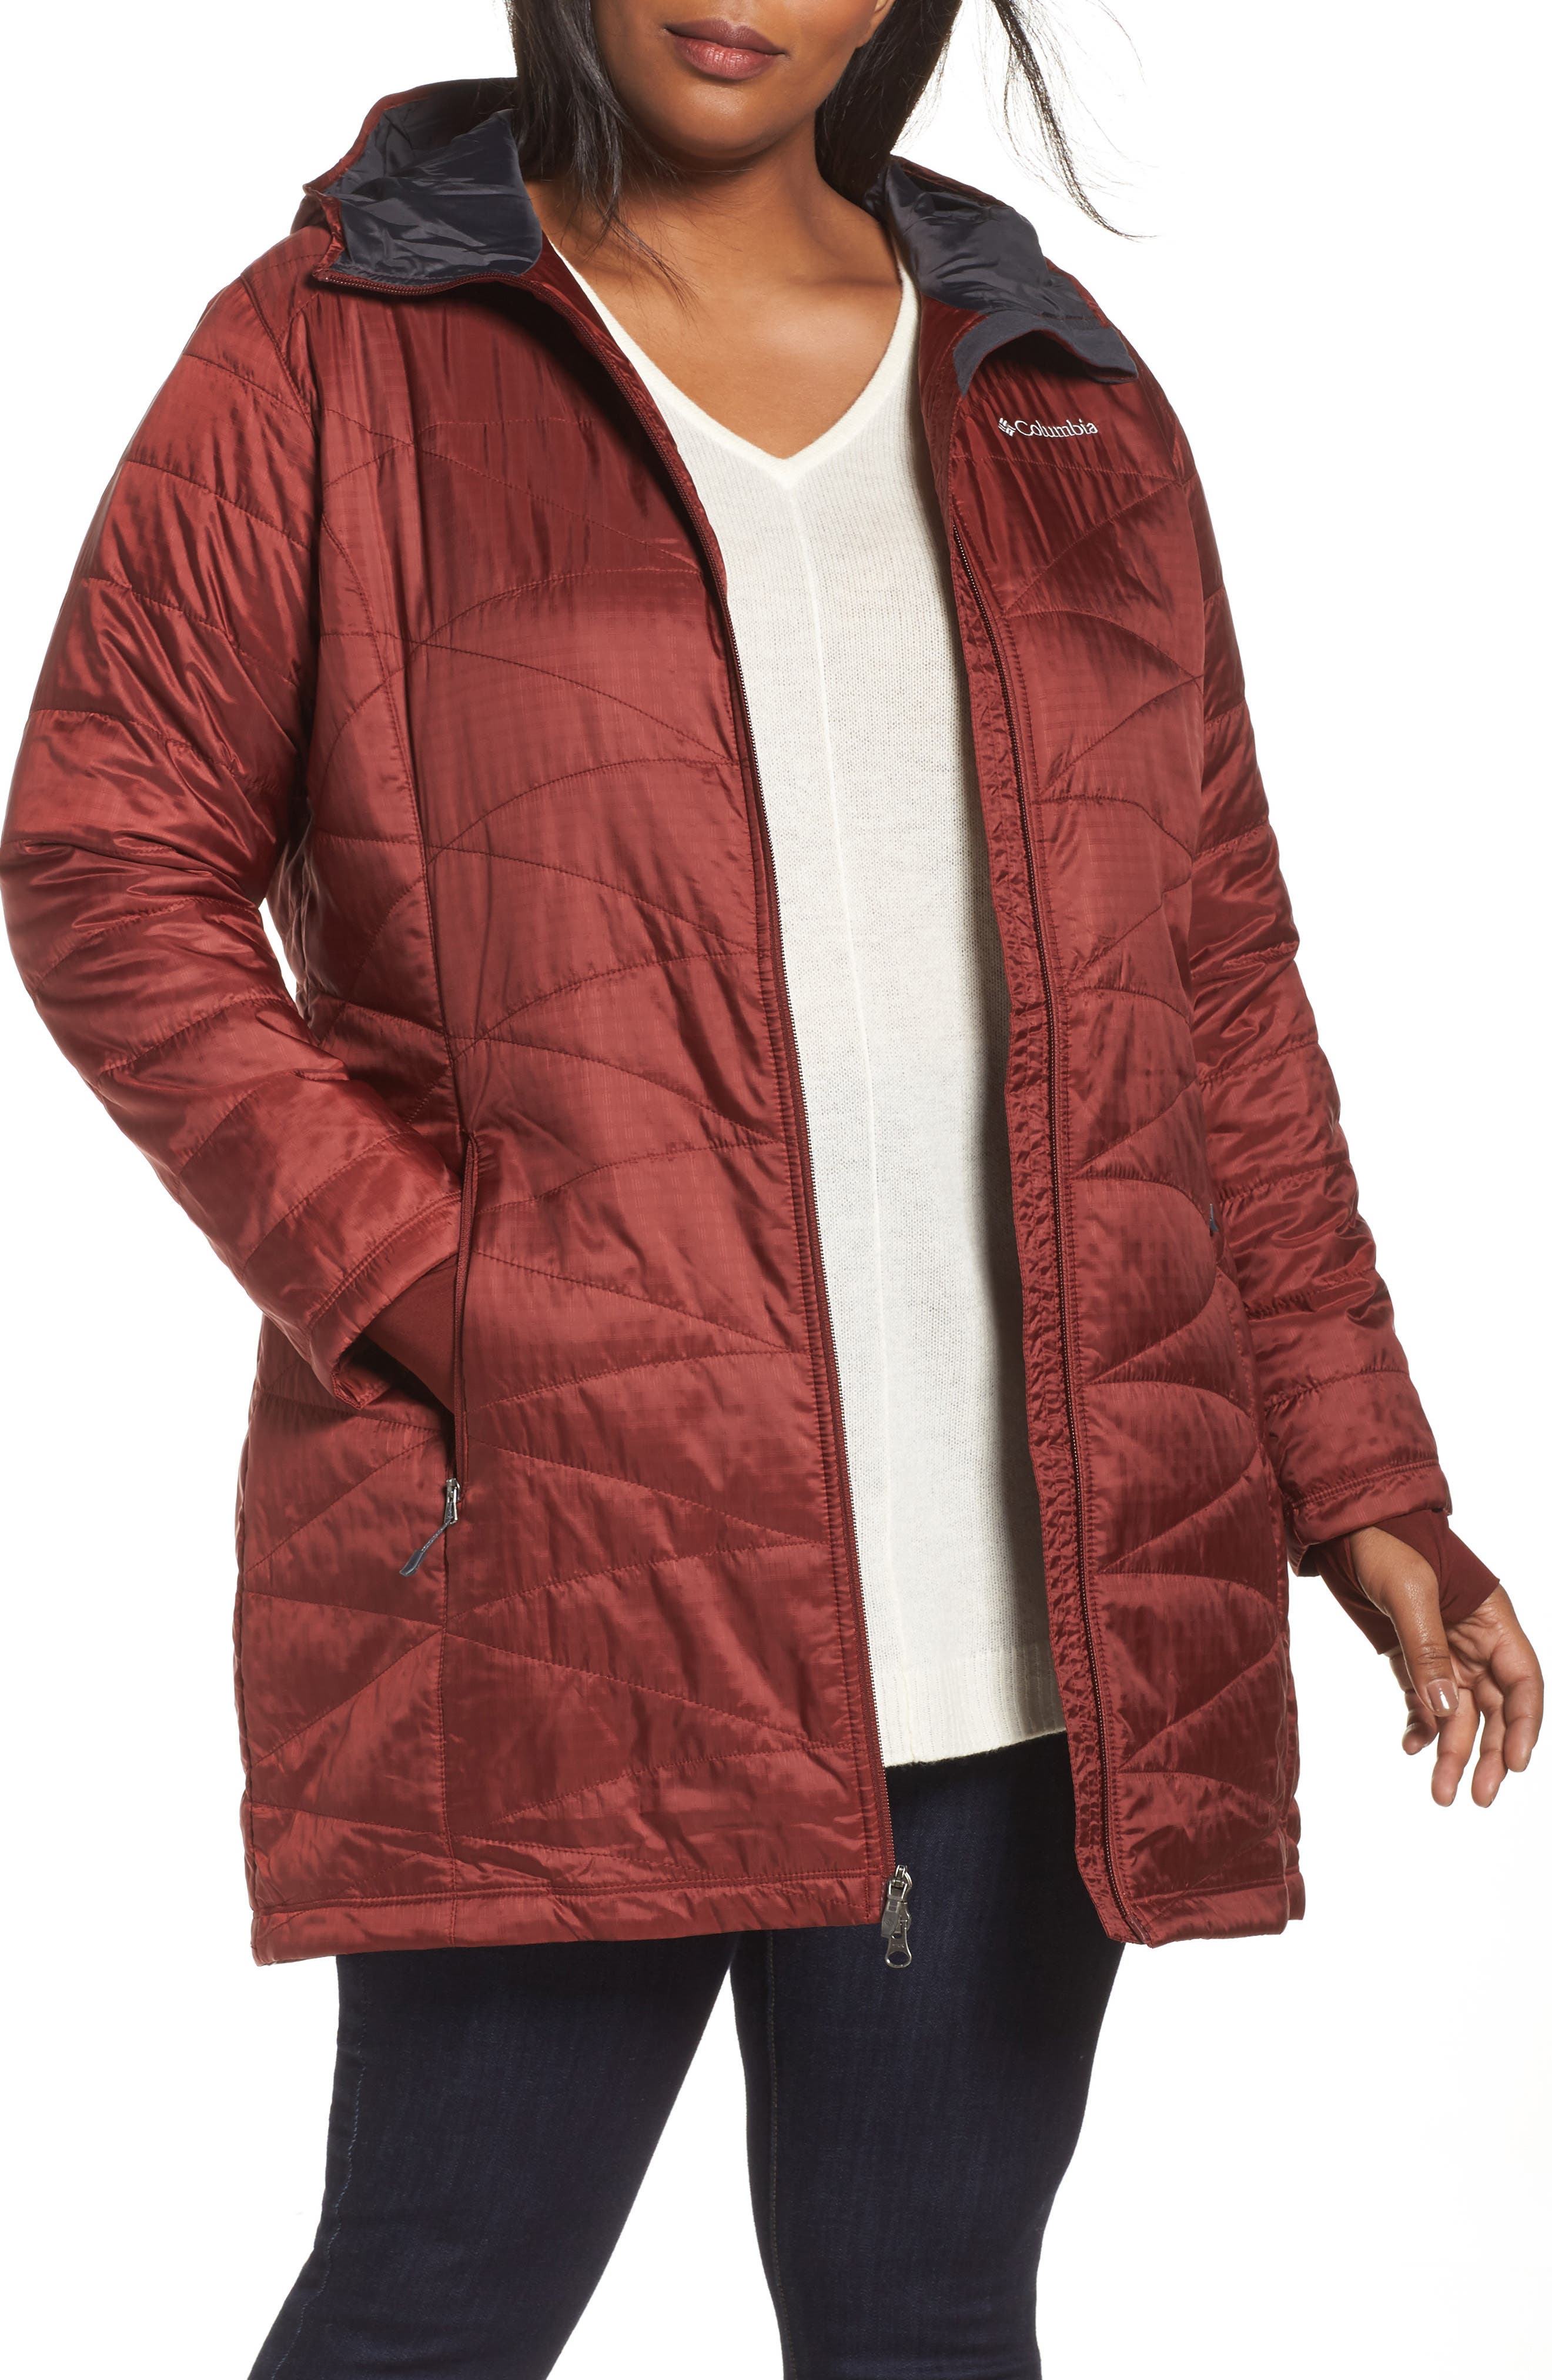 Mighty Lite Hooded Jacket,                             Main thumbnail 1, color,                             Deep Rust